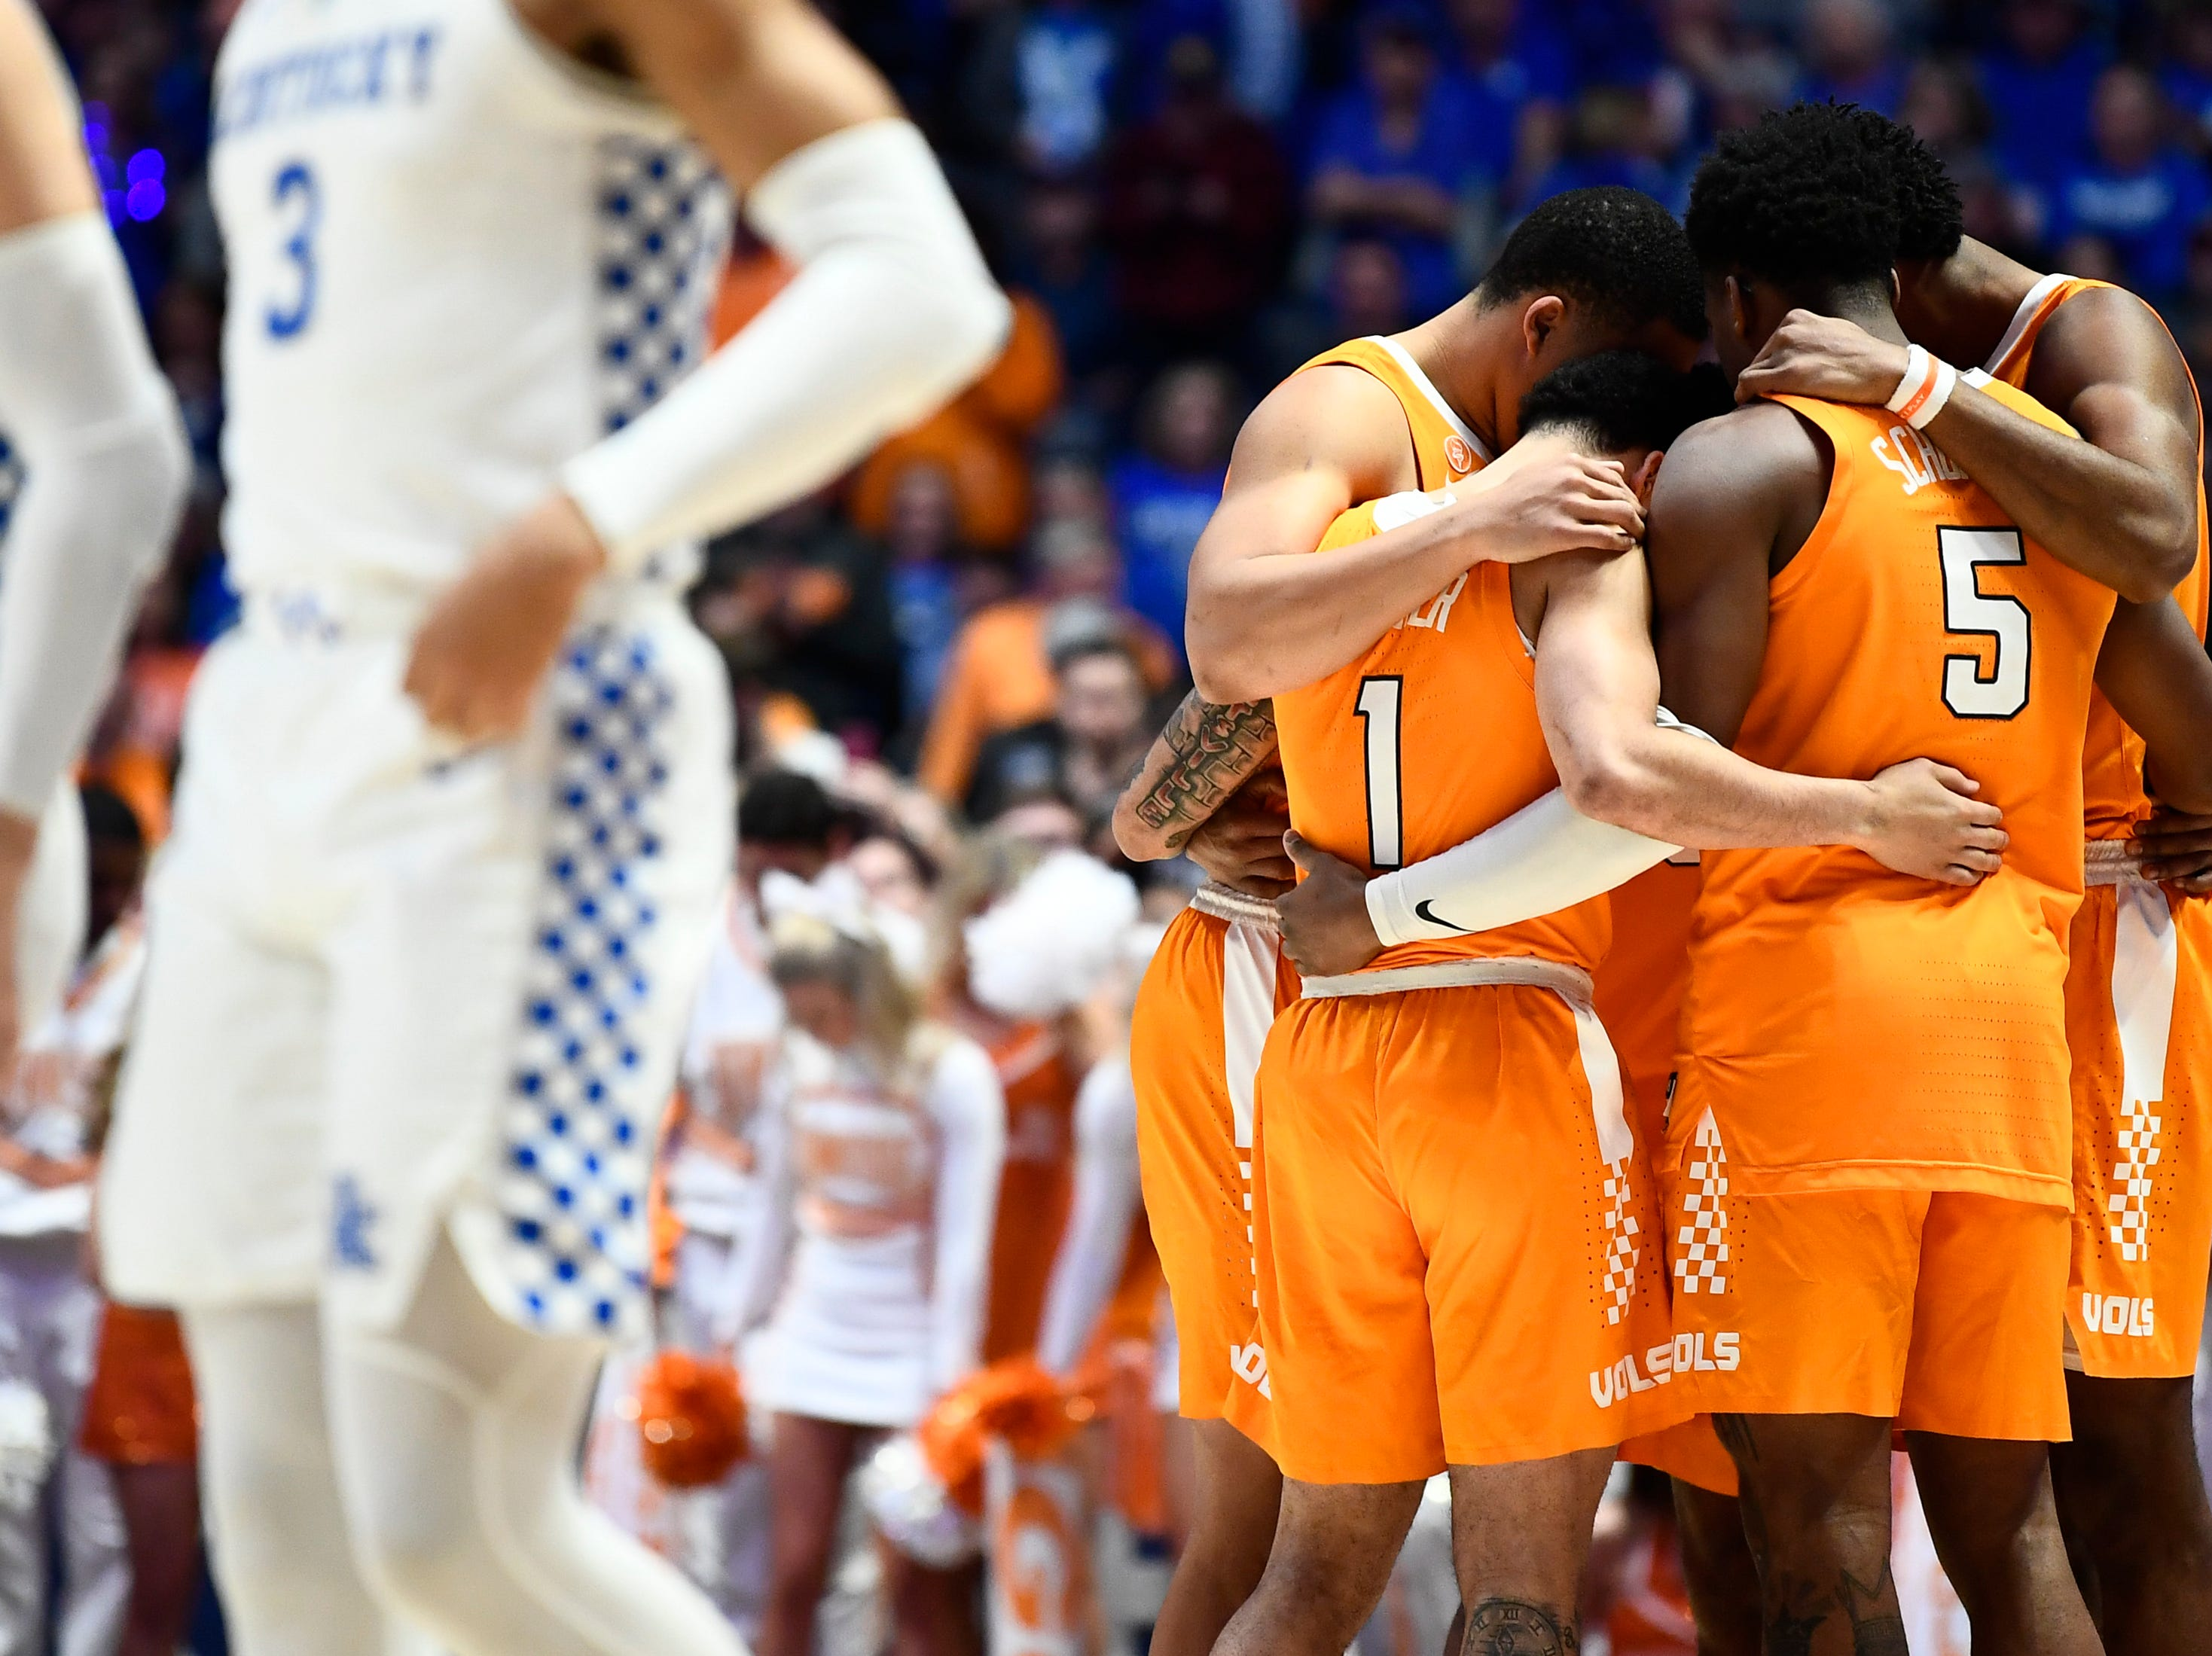 Tennessee players huddle before a SEC Men's Basketball Tournament semifinal game against Kentucky at Bridgestone Arena in Nashville, Tenn., Saturday, March 16, 2019.